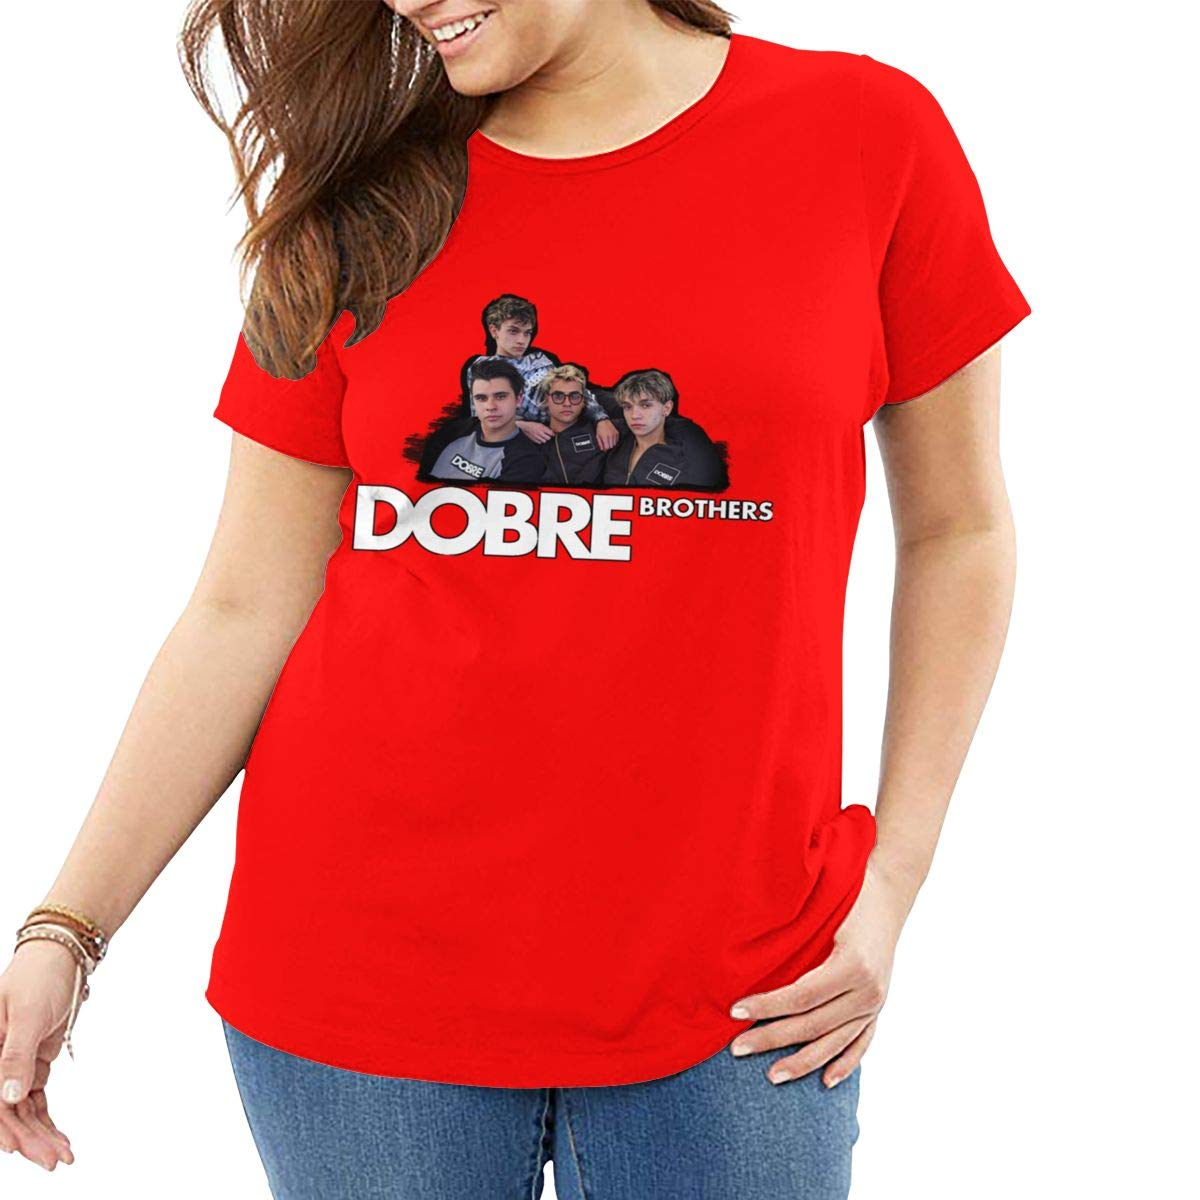 Fat Women's T Shirt Dobre Brothers Tee Shirts T-Shirt Short-Sleeve Round Neck Tshirt for Women Youth Girls Plus Size Red 3XL by BKashy